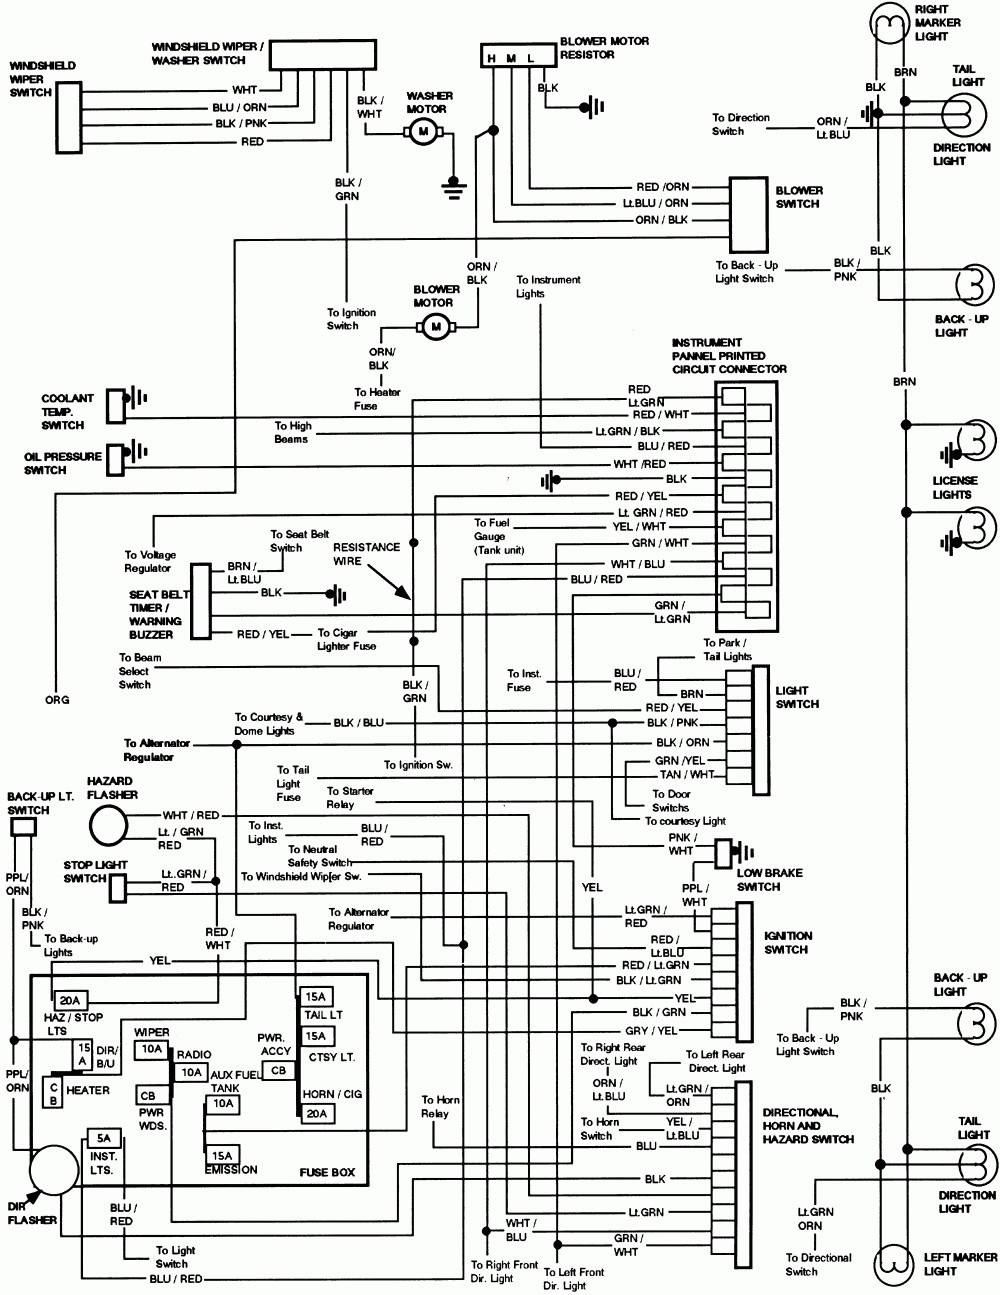 medium resolution of 95 ford thunderbird engine diagram wiring diagrams bib 1995 thunderbird ecm wiring diagram